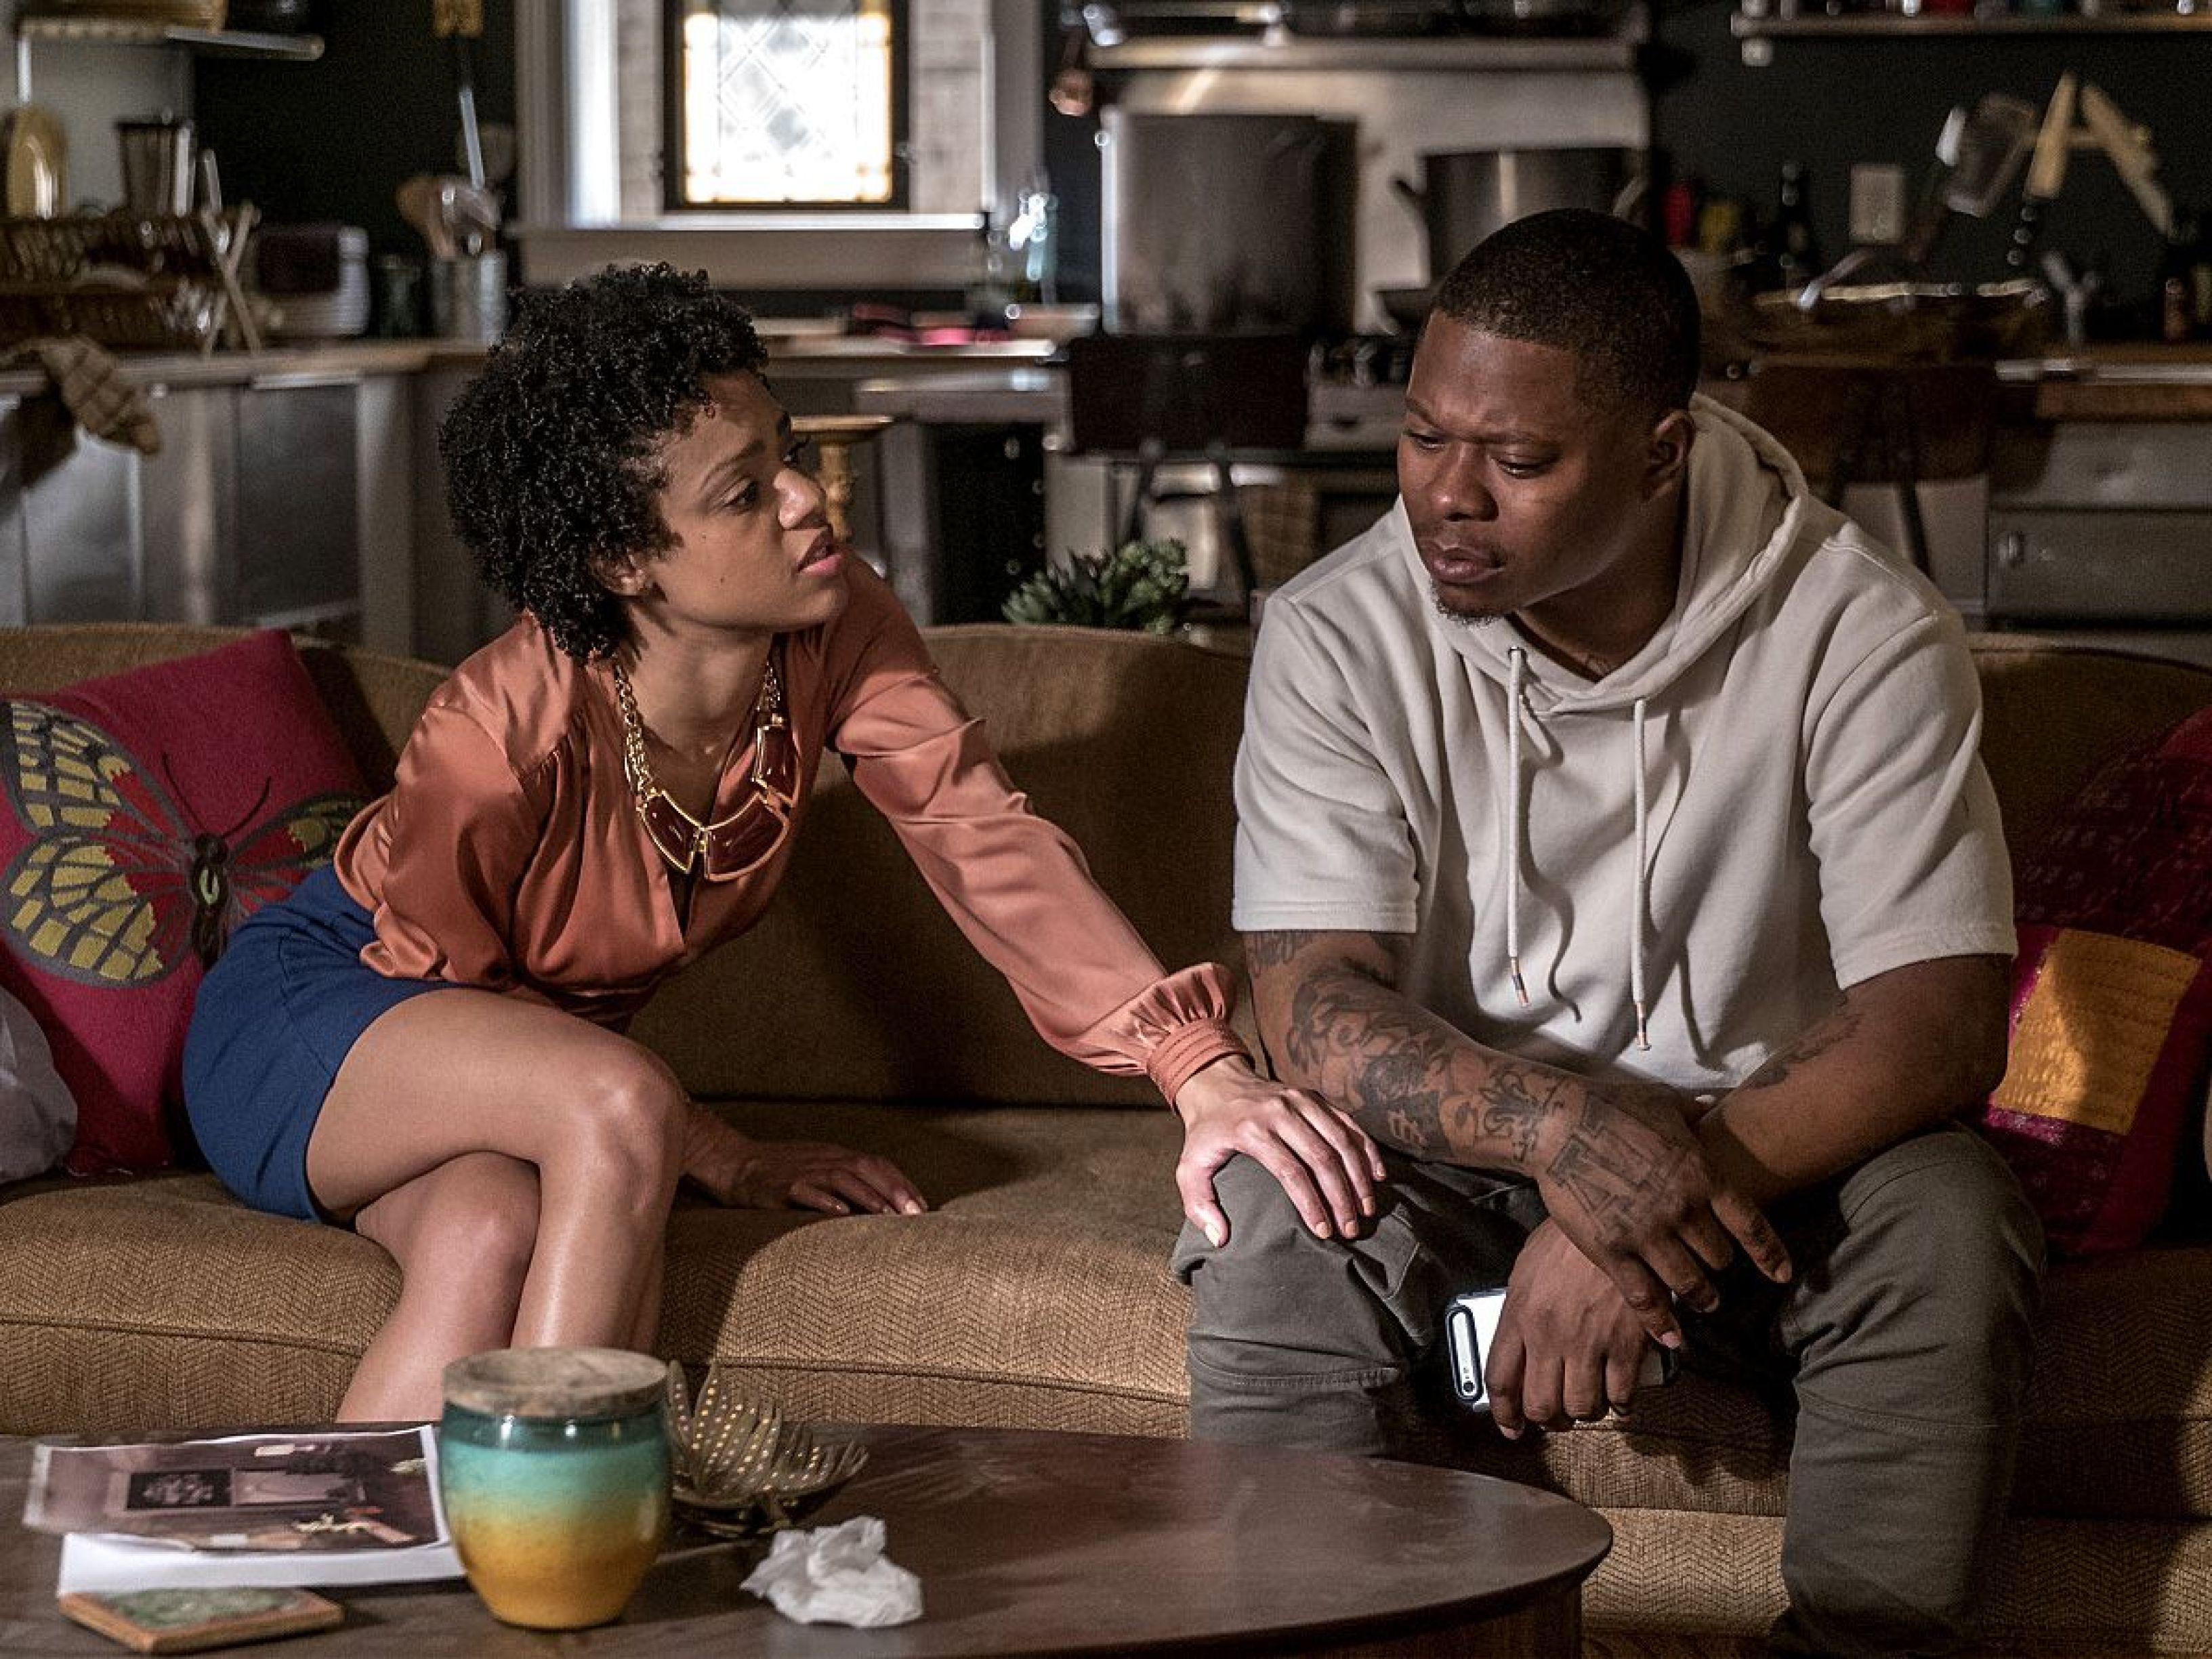 'The Chi' Star Tiffany Boone Breaks Silence on Series Exit Amid Misconduct Accusations Against Jason Mitchell